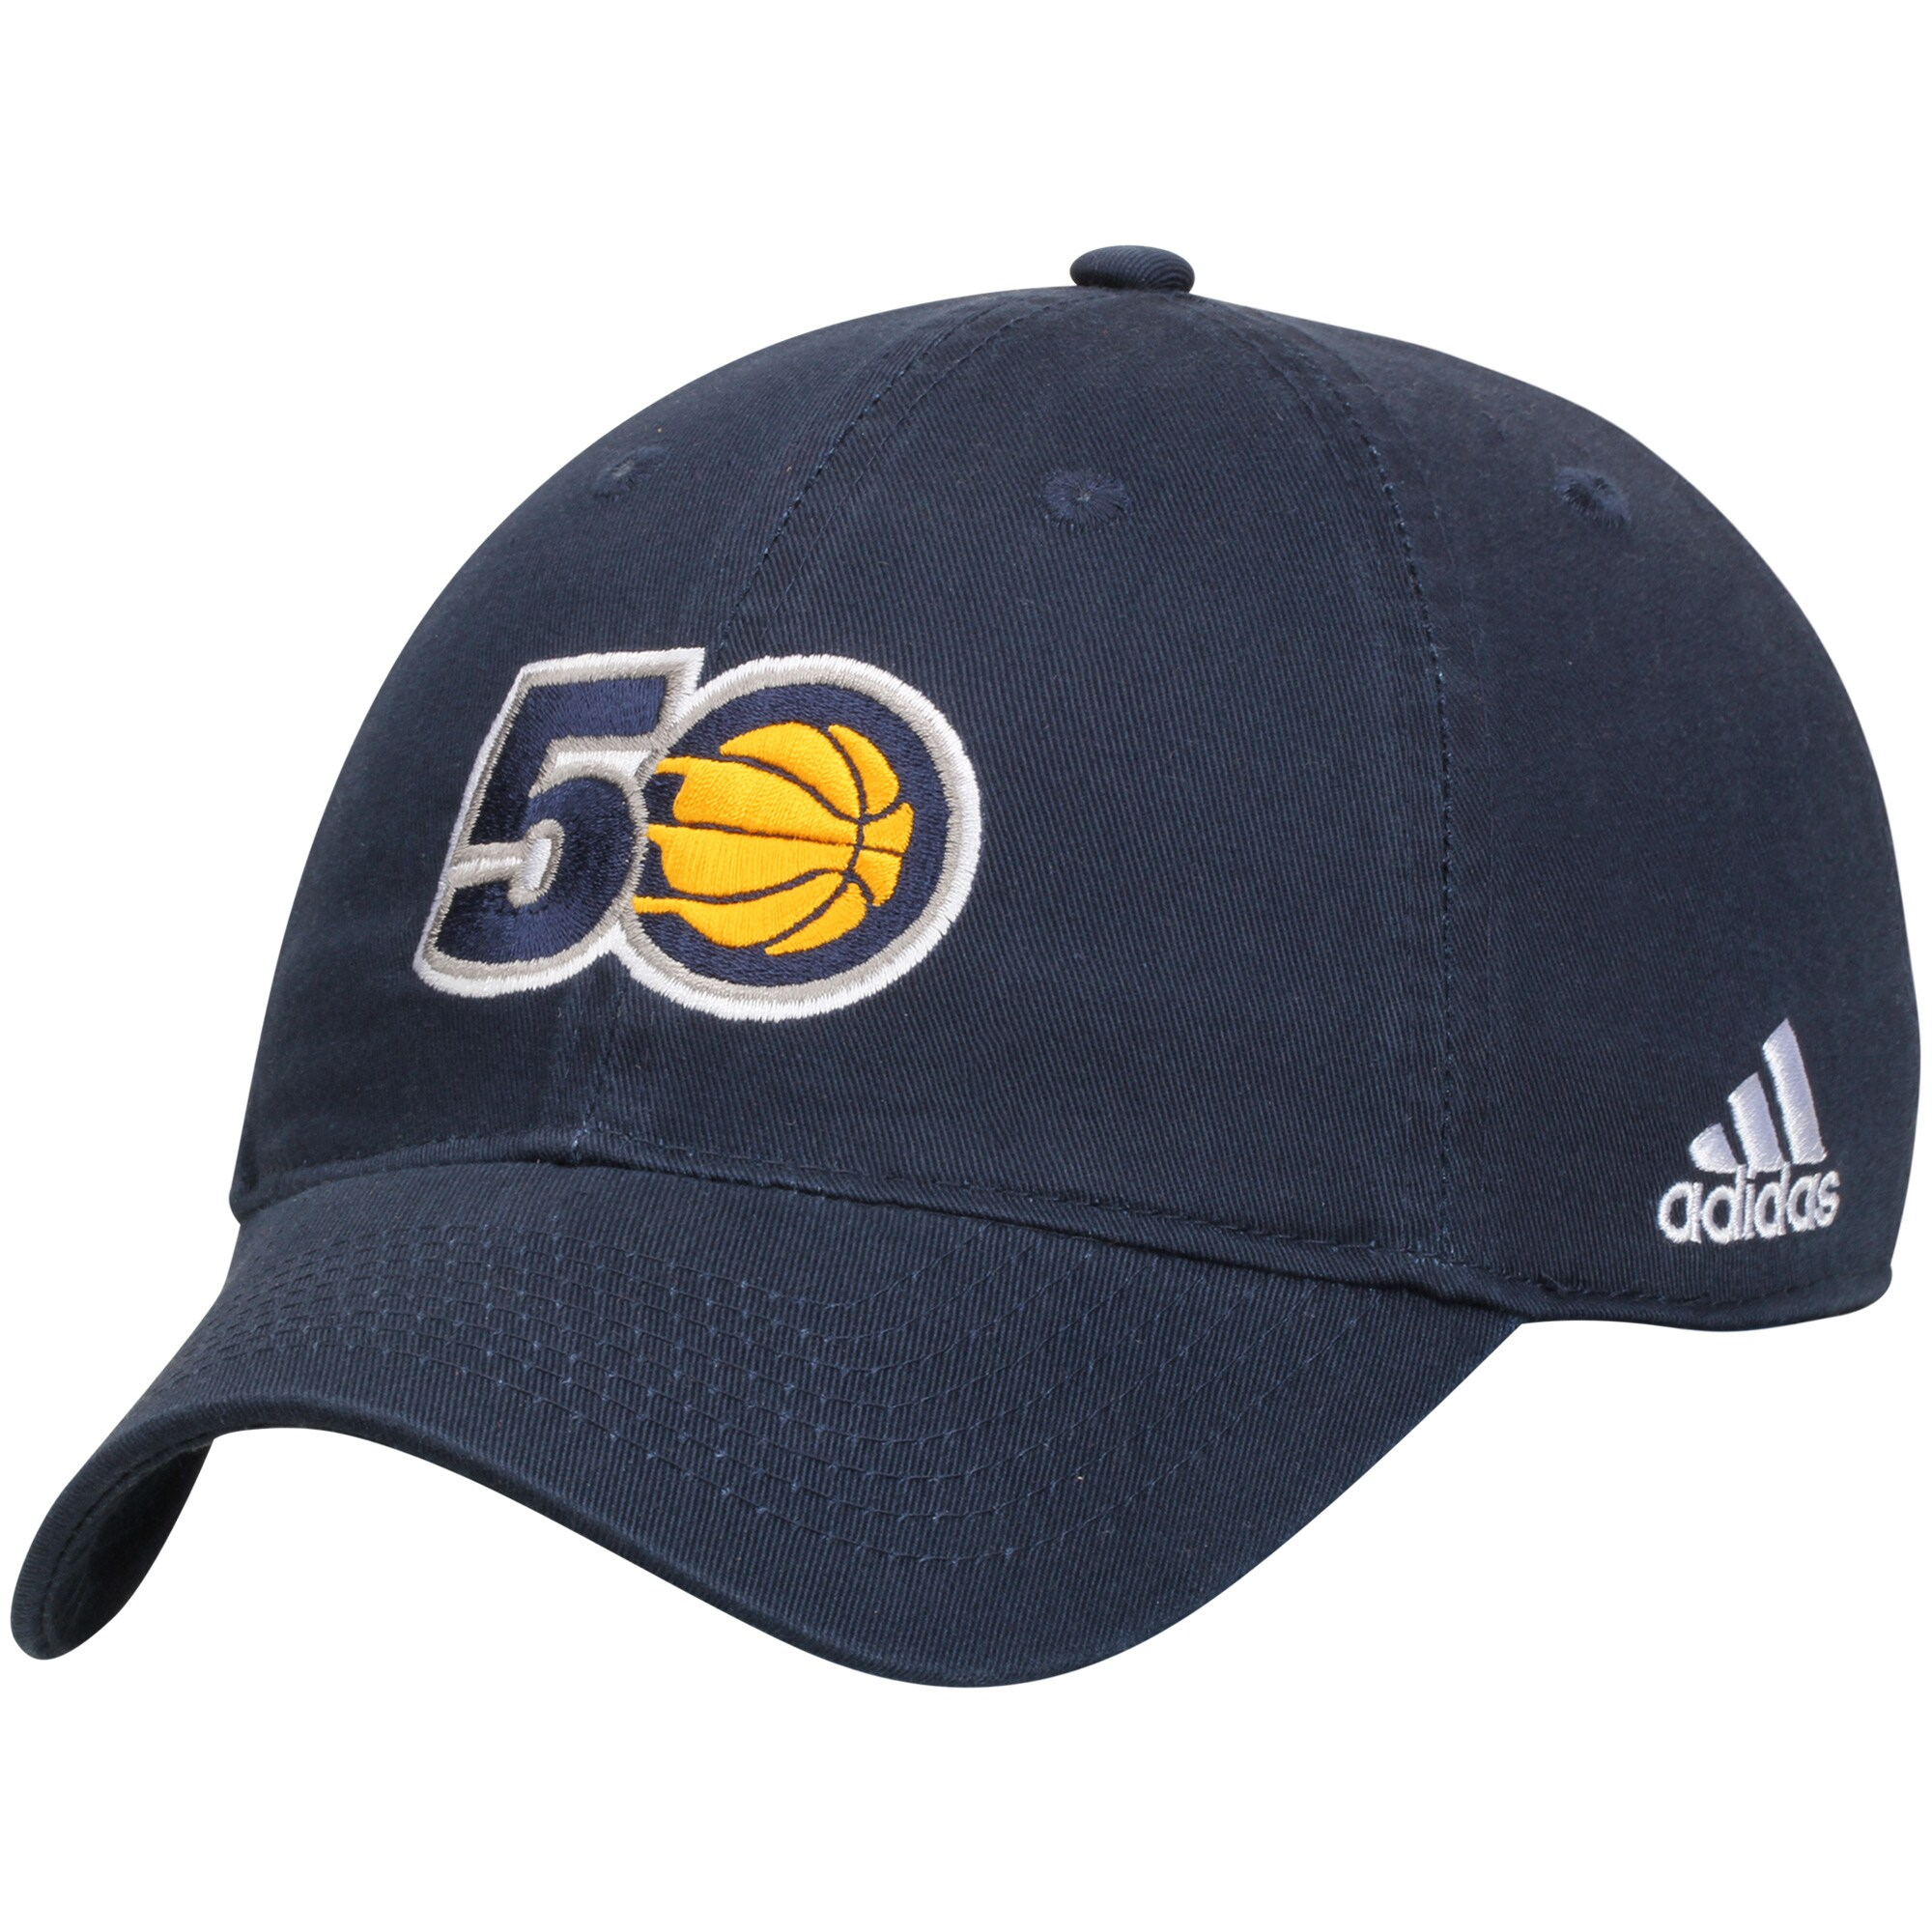 Indiana Pacers adidas Anniversary Adjustable Hat - Navy